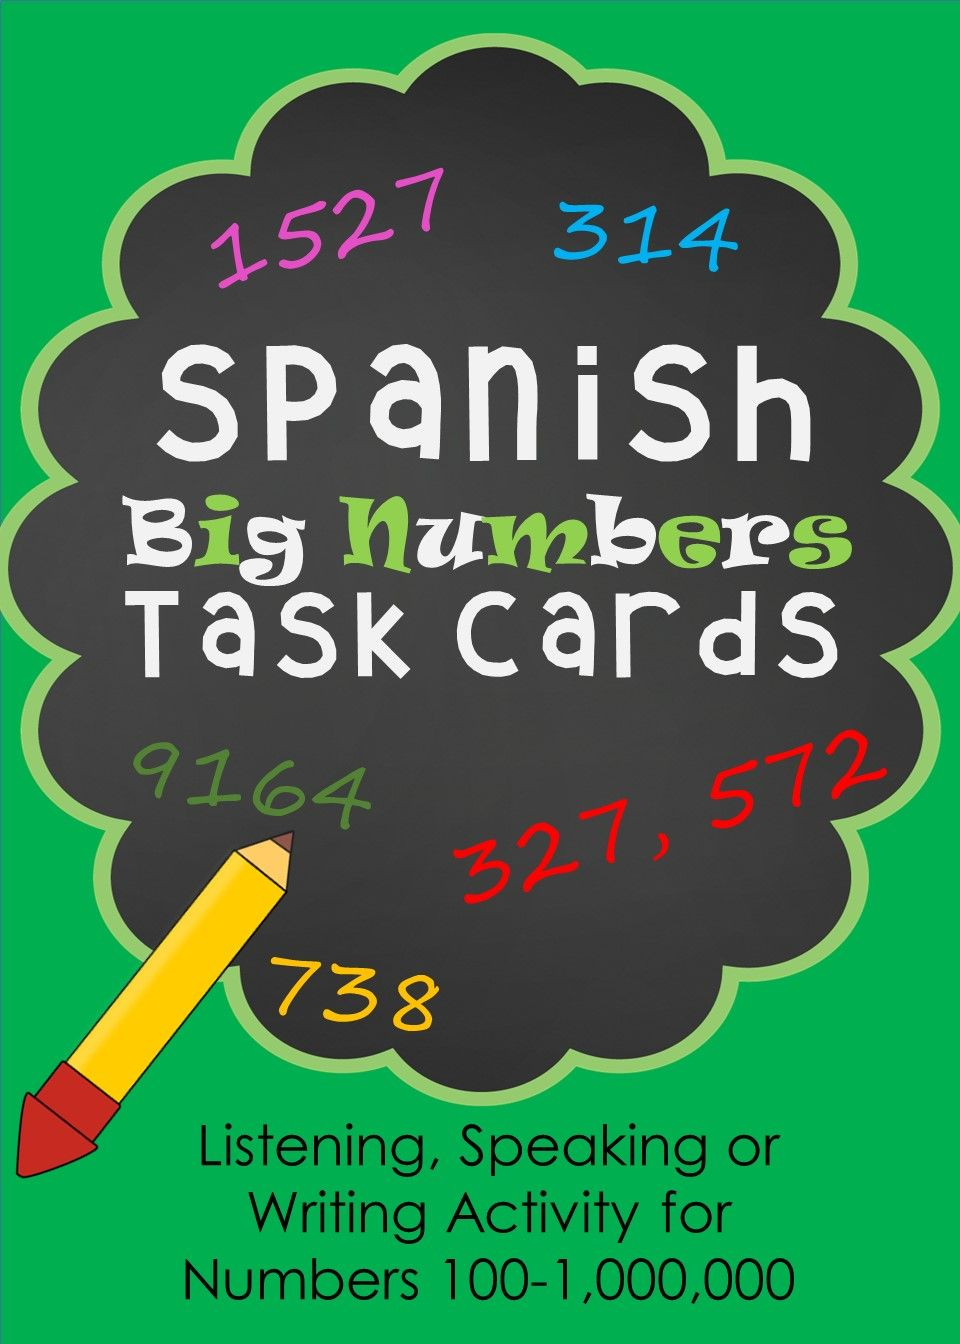 how to say big numbers in spanish